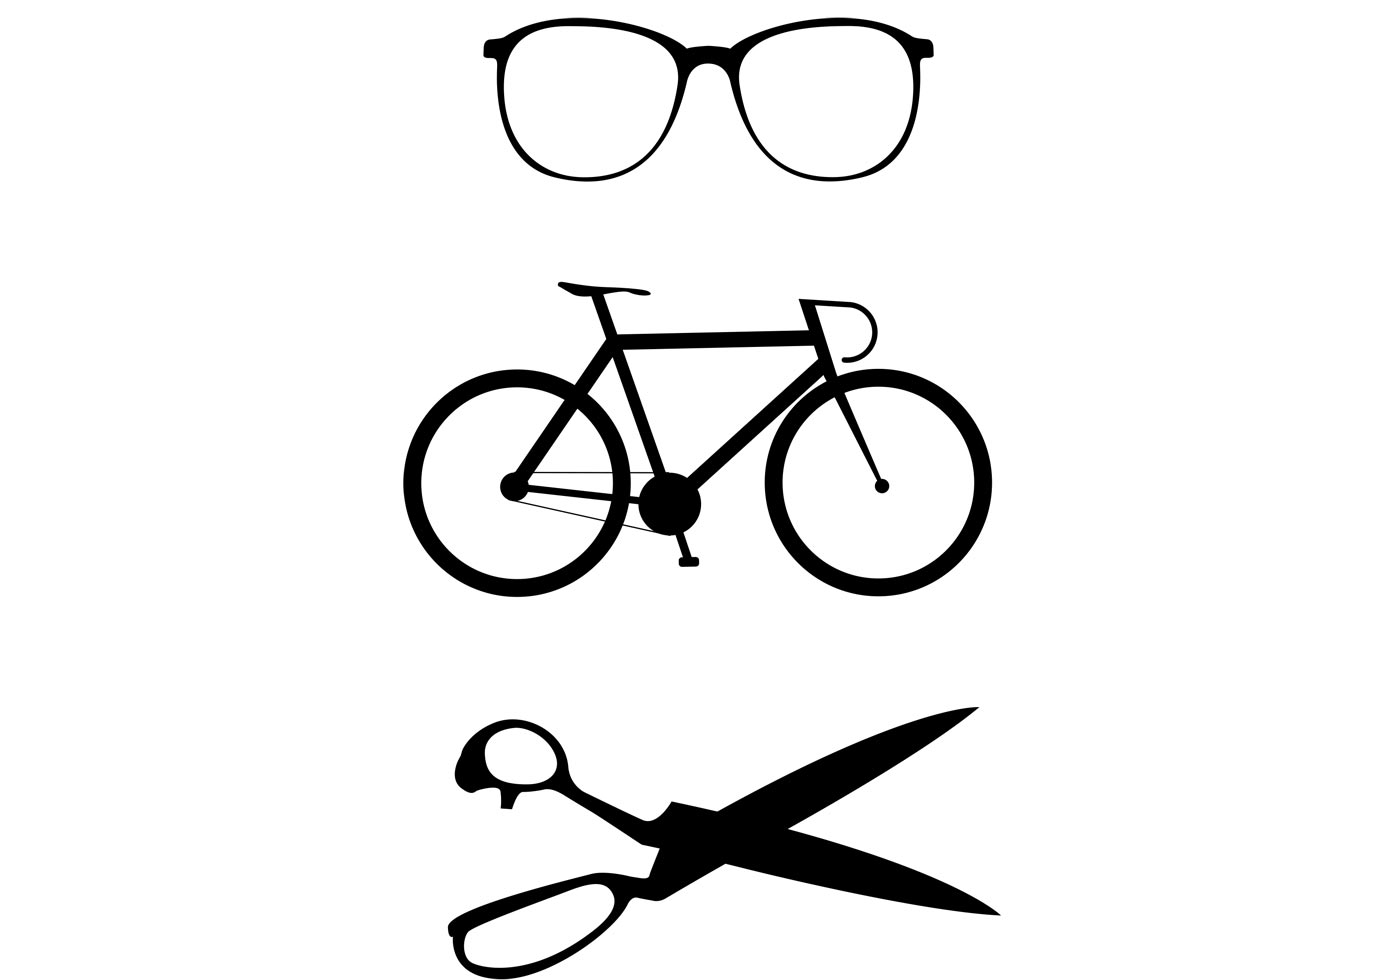 Art Bicycle Silhouette Border Clip